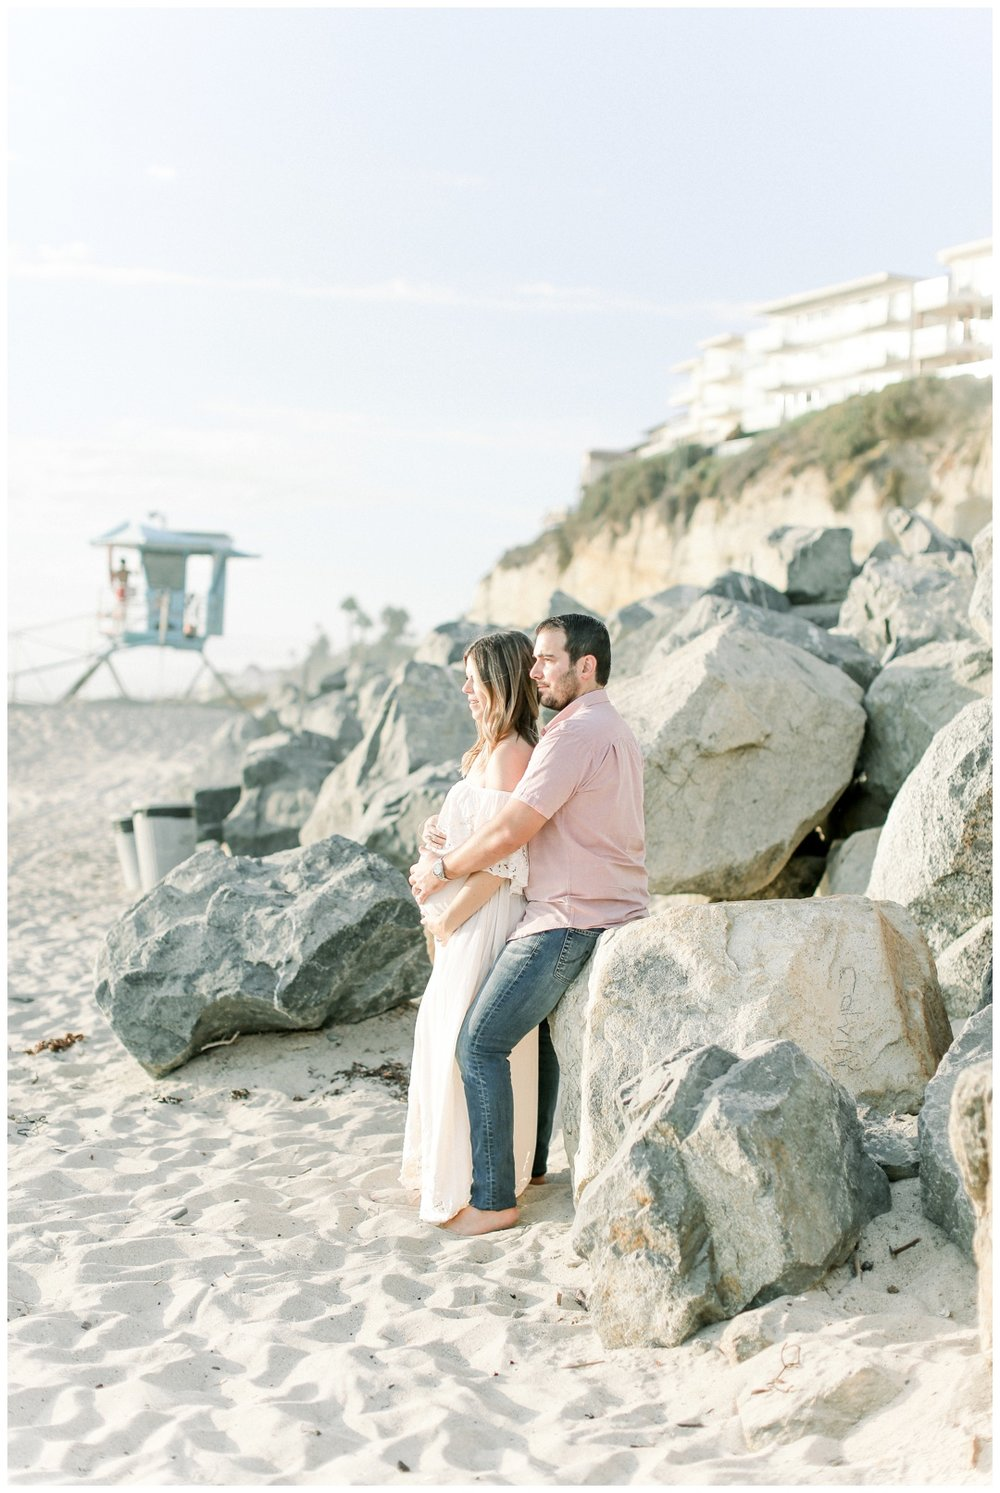 Newport_Beach_Maternity_Photographer_Newport_Beach_Newborn_Photographer_Orange_County_Newborn_Photographer_Cori_Kleckner_Photography_Orange_County_San_Clemente_Maternity_Session_Photography__2246.jpg